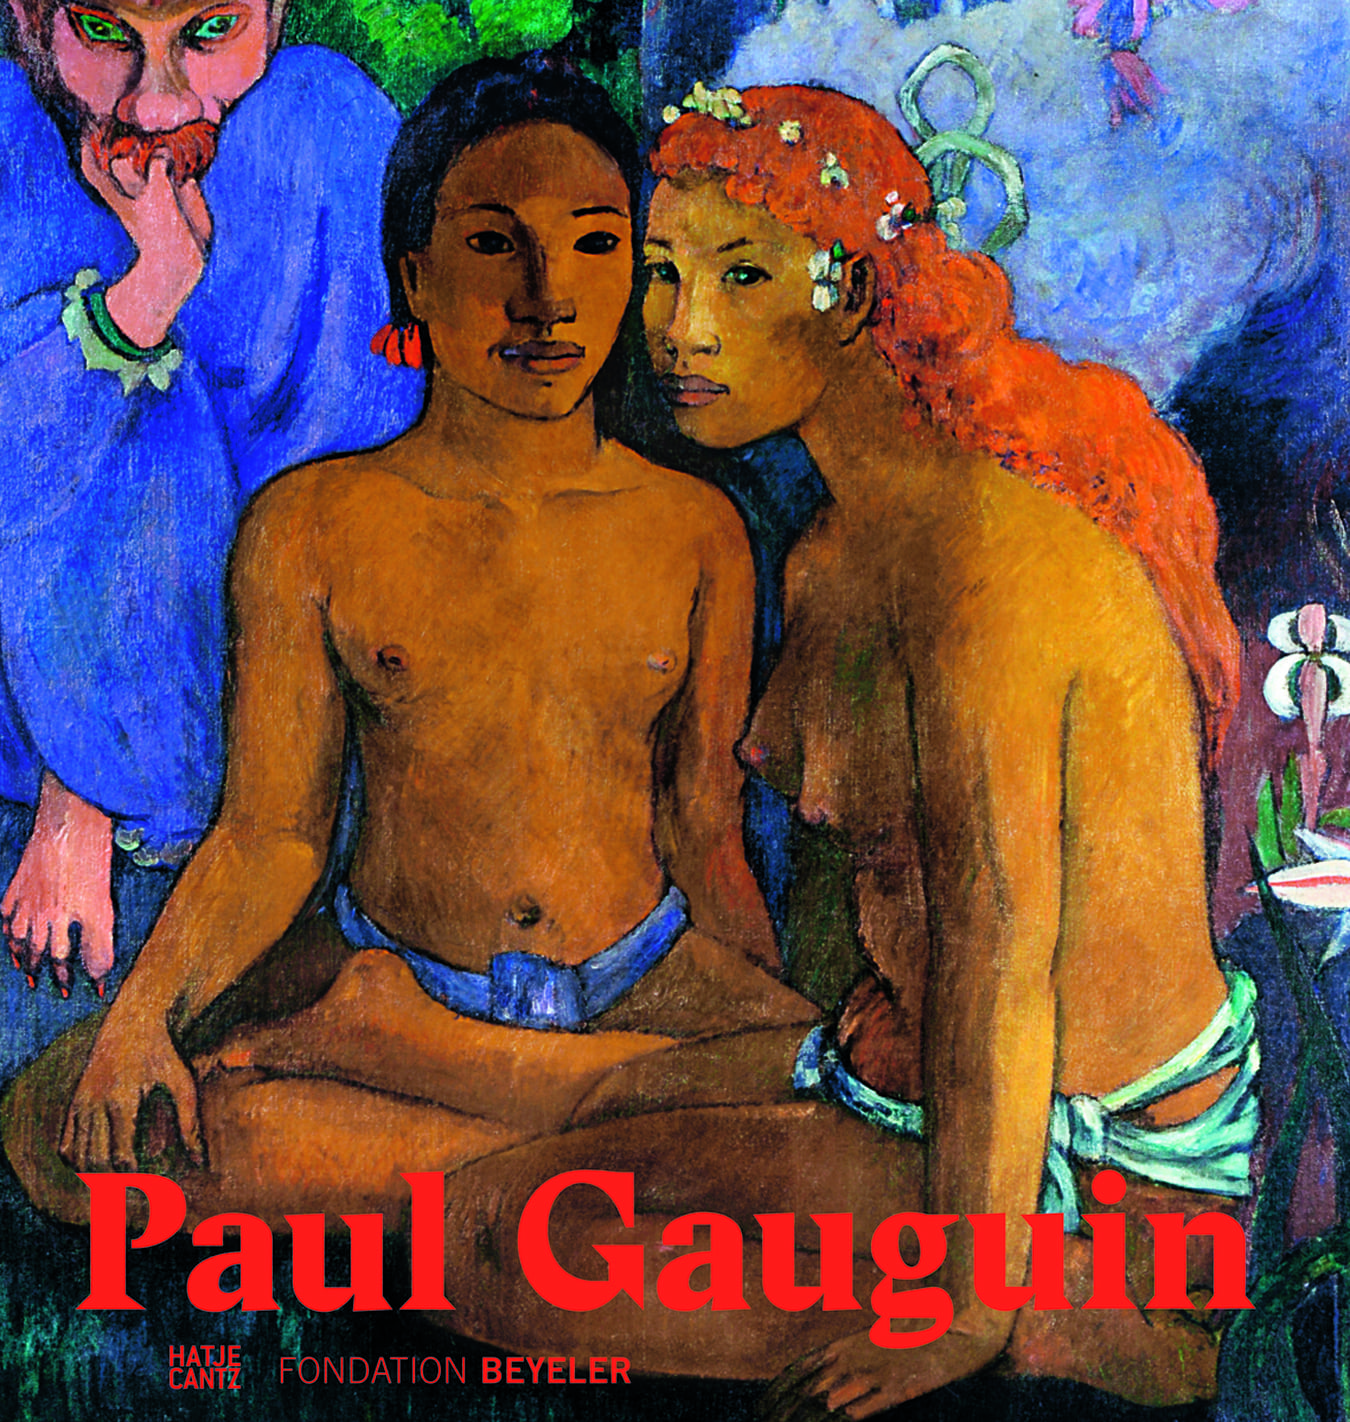 Fondation Beyeler (Hg.)- Paul Gauguin